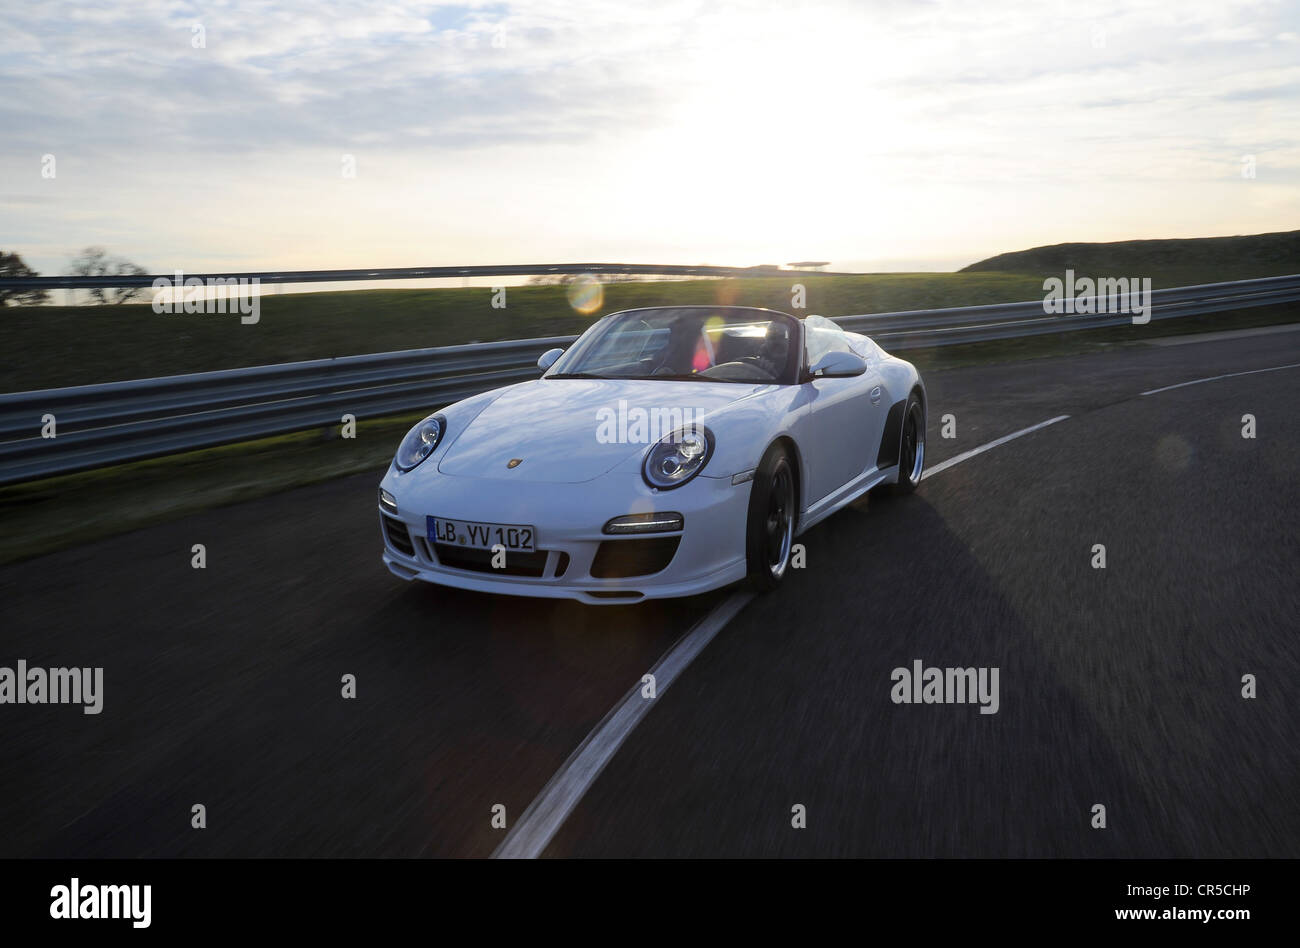 2011 Porsche 911 Speedster limited edition convertible sports car tracking photo picture - Stock Image